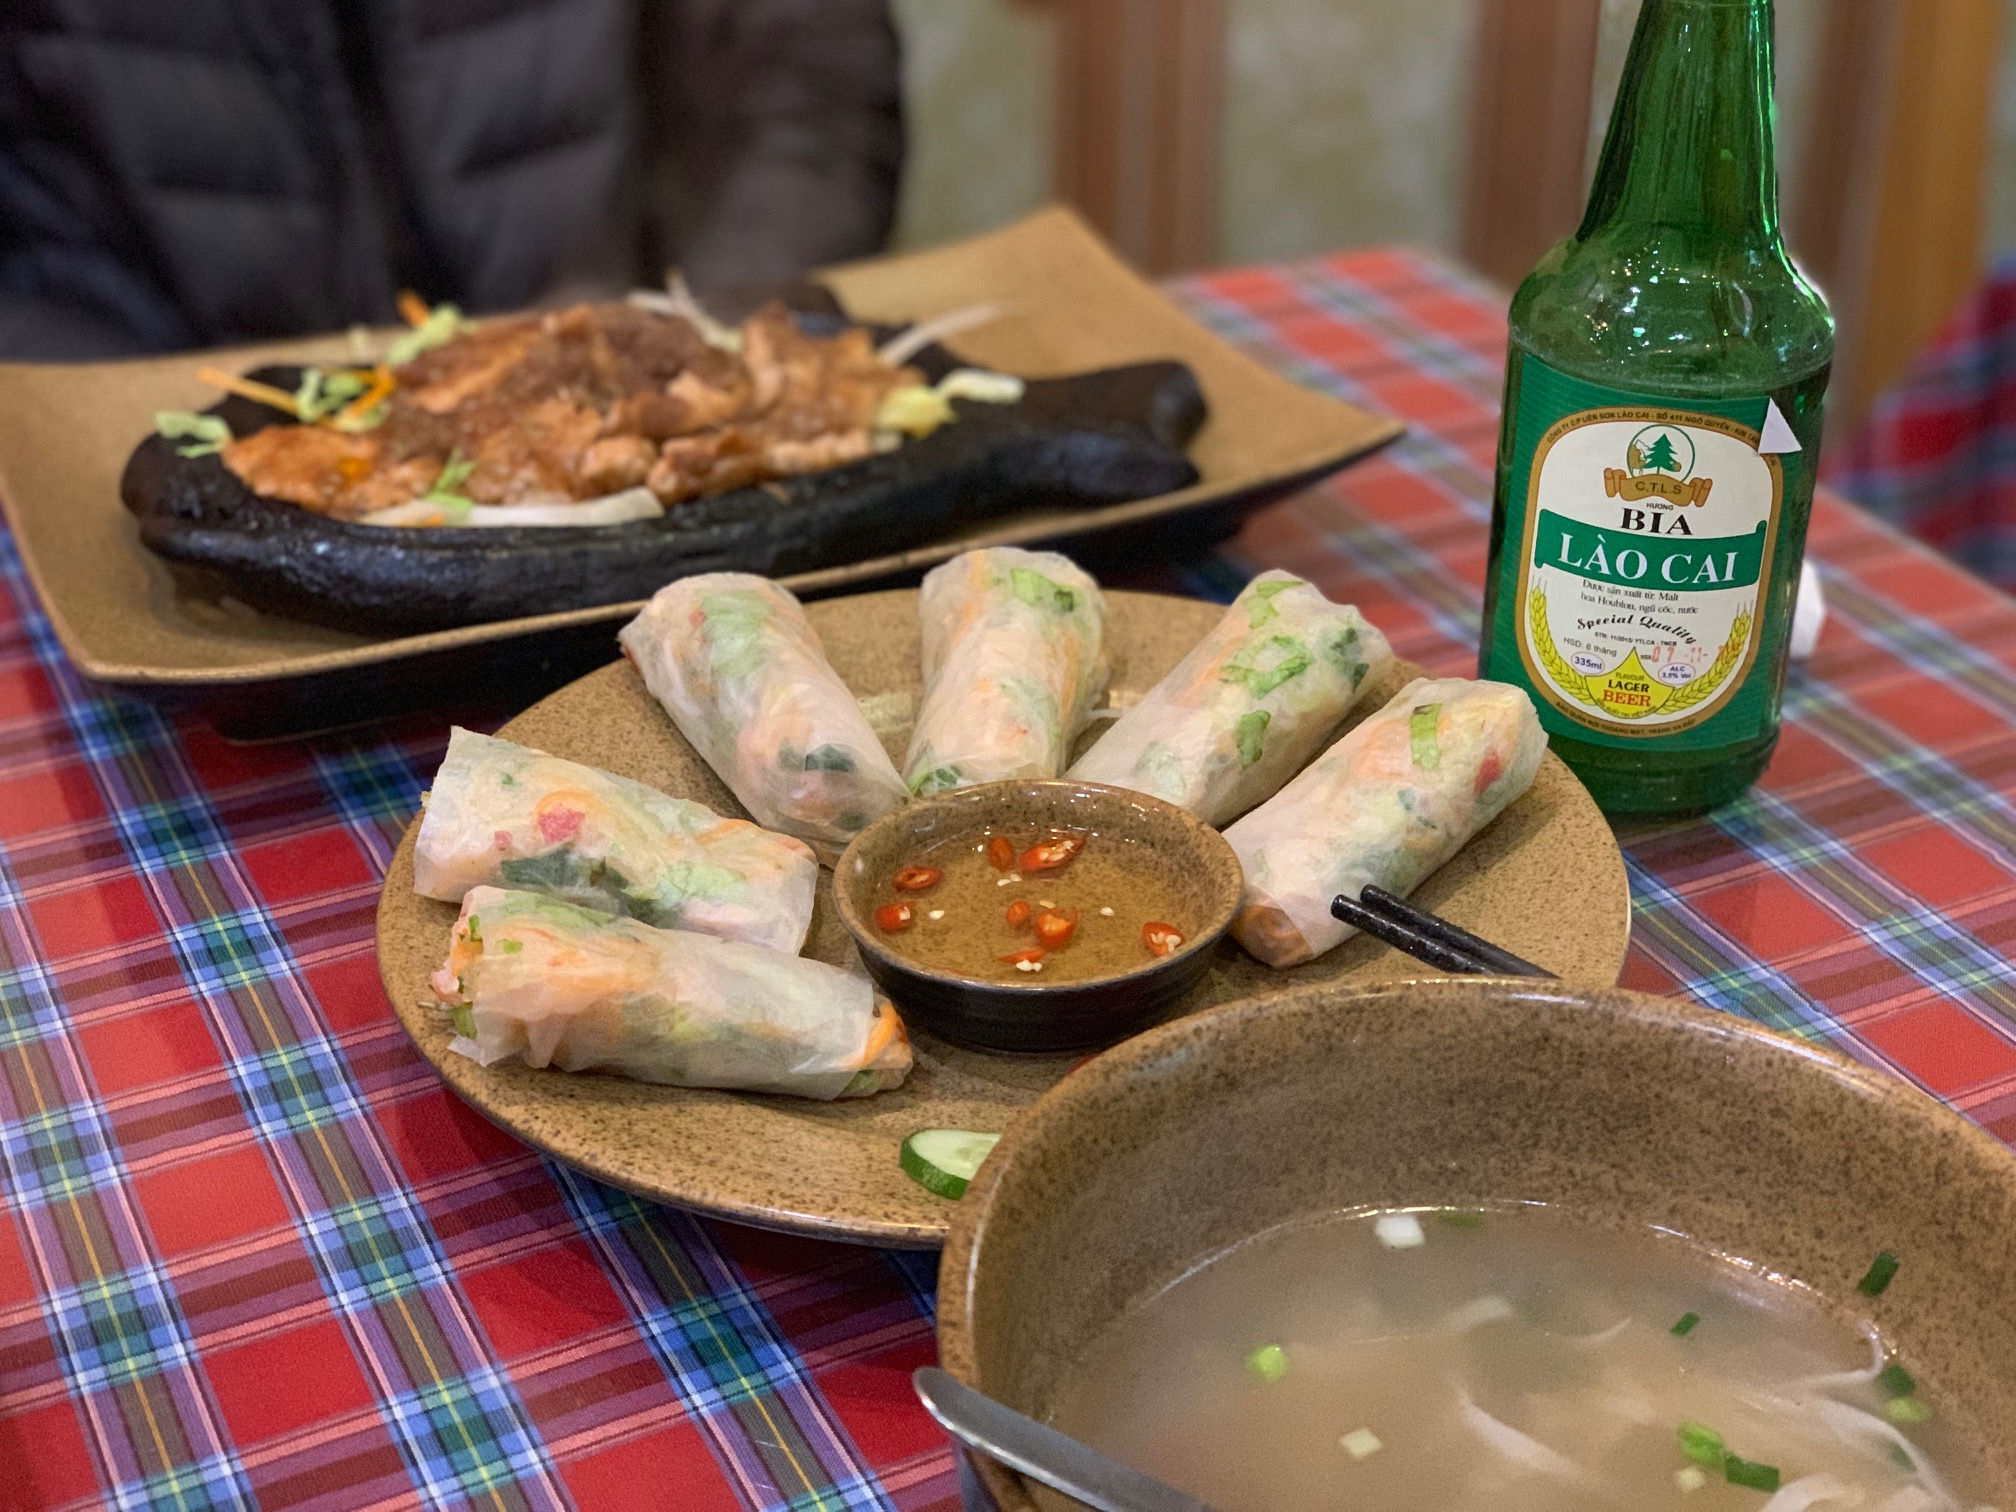 lost count - spring rolls consumed (fresh and fried)